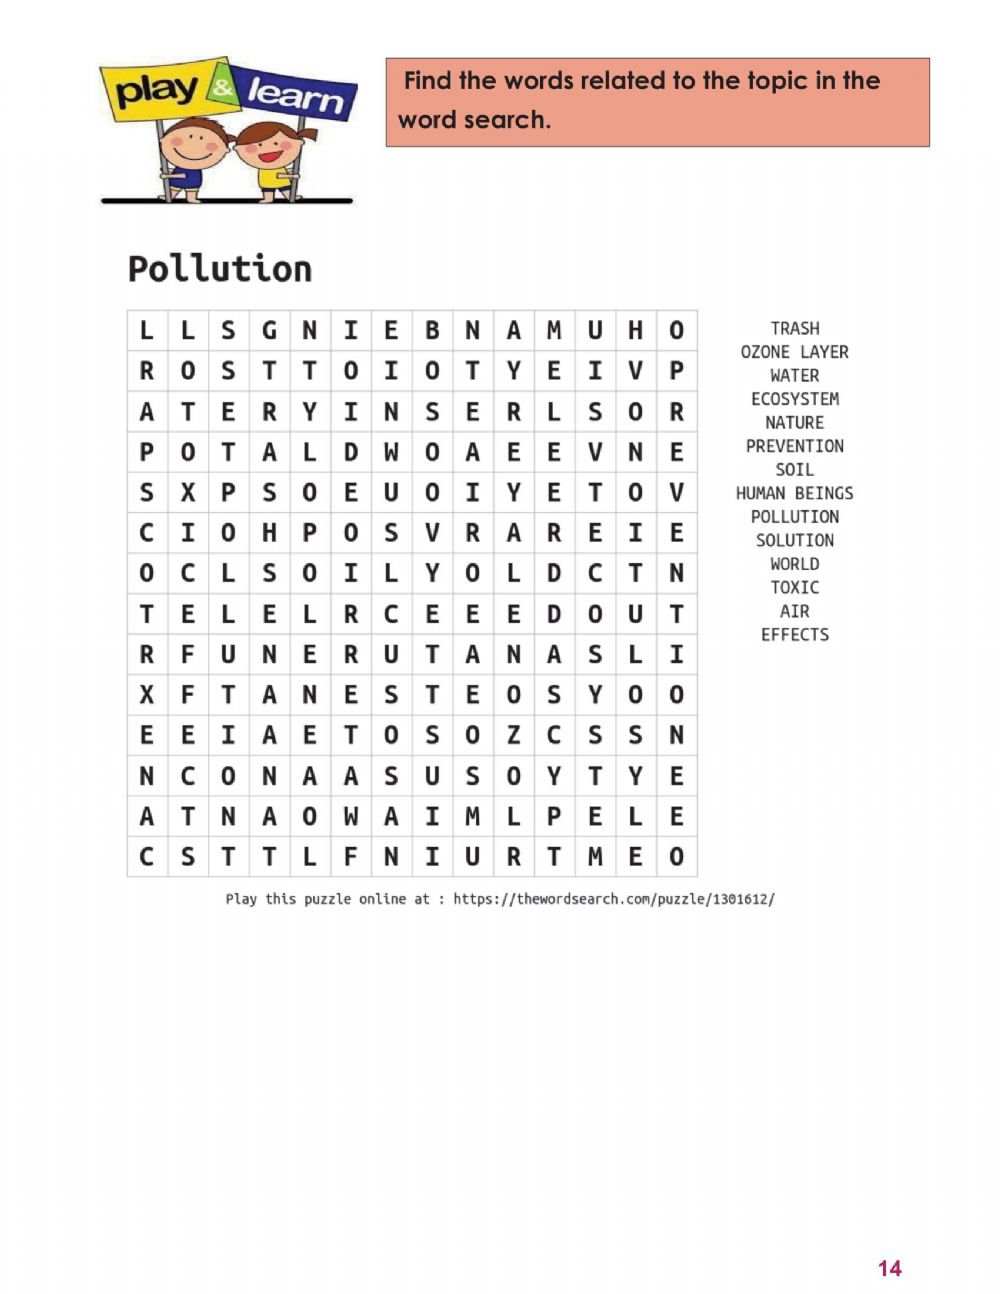 medium resolution of 2T-8th-Pollution-Word search 3 worksheet